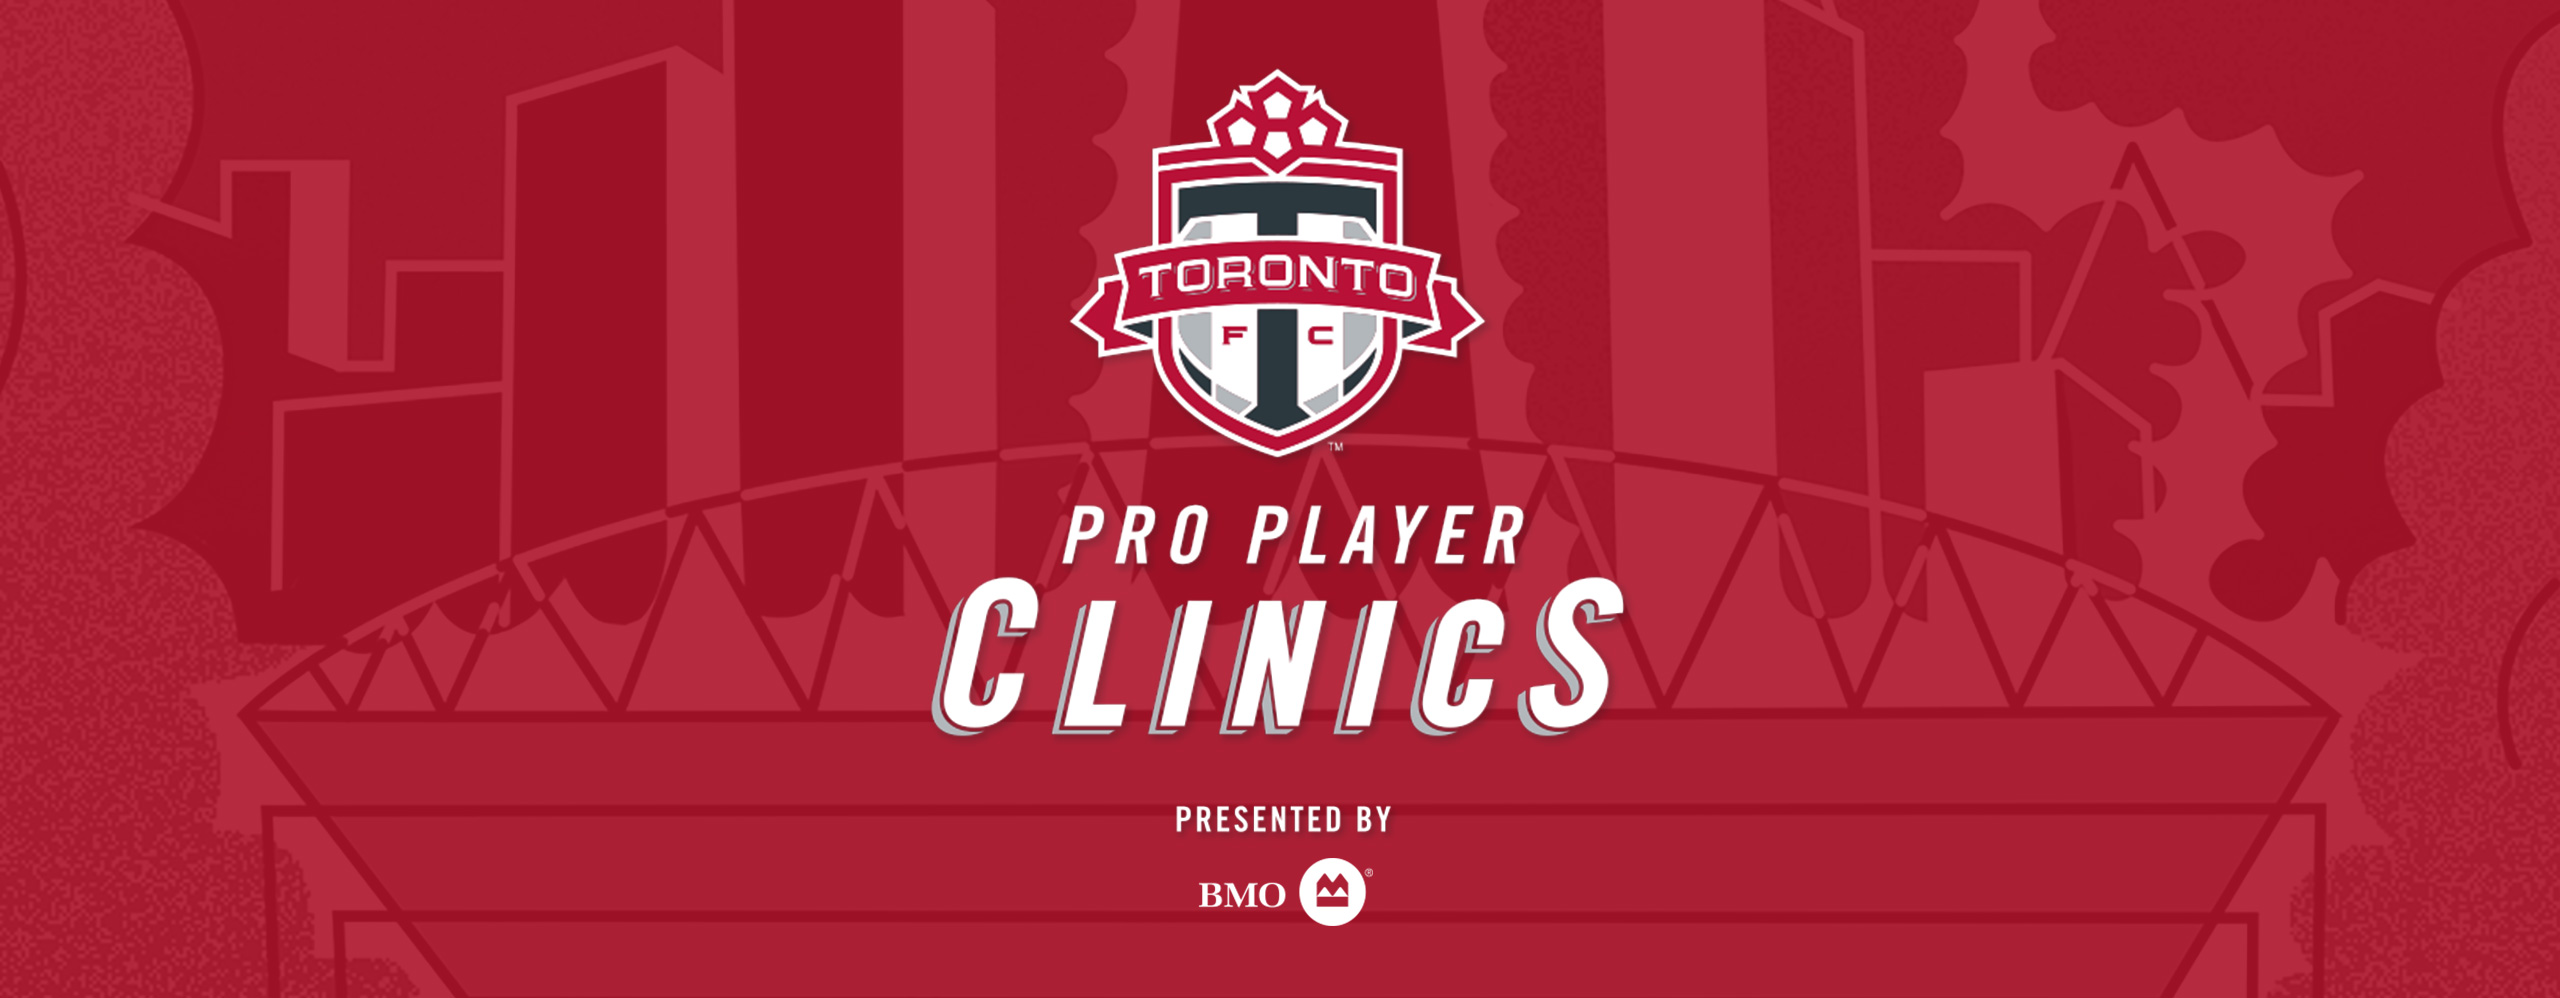 See How Fun The Game Can Be - Pro Clinics